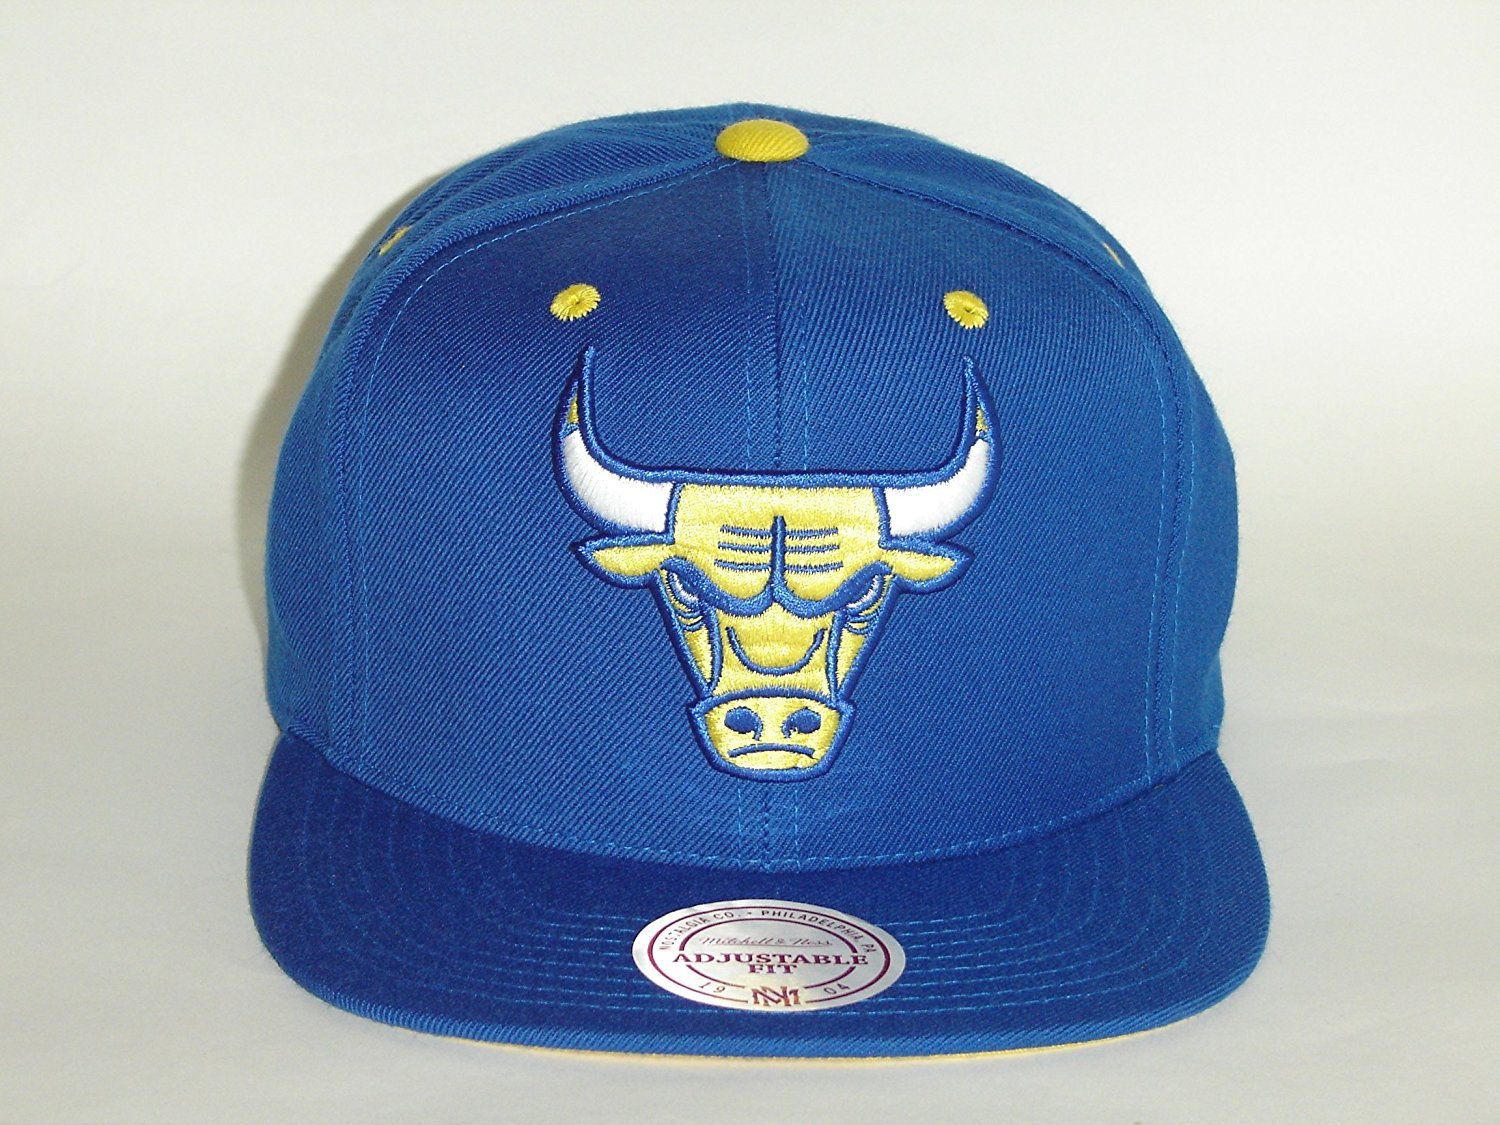 0b0a84615f5 Get Quotations · Mitchell and Ness NBA Chicago Bulls Blue Special Retro Snapback  Cap